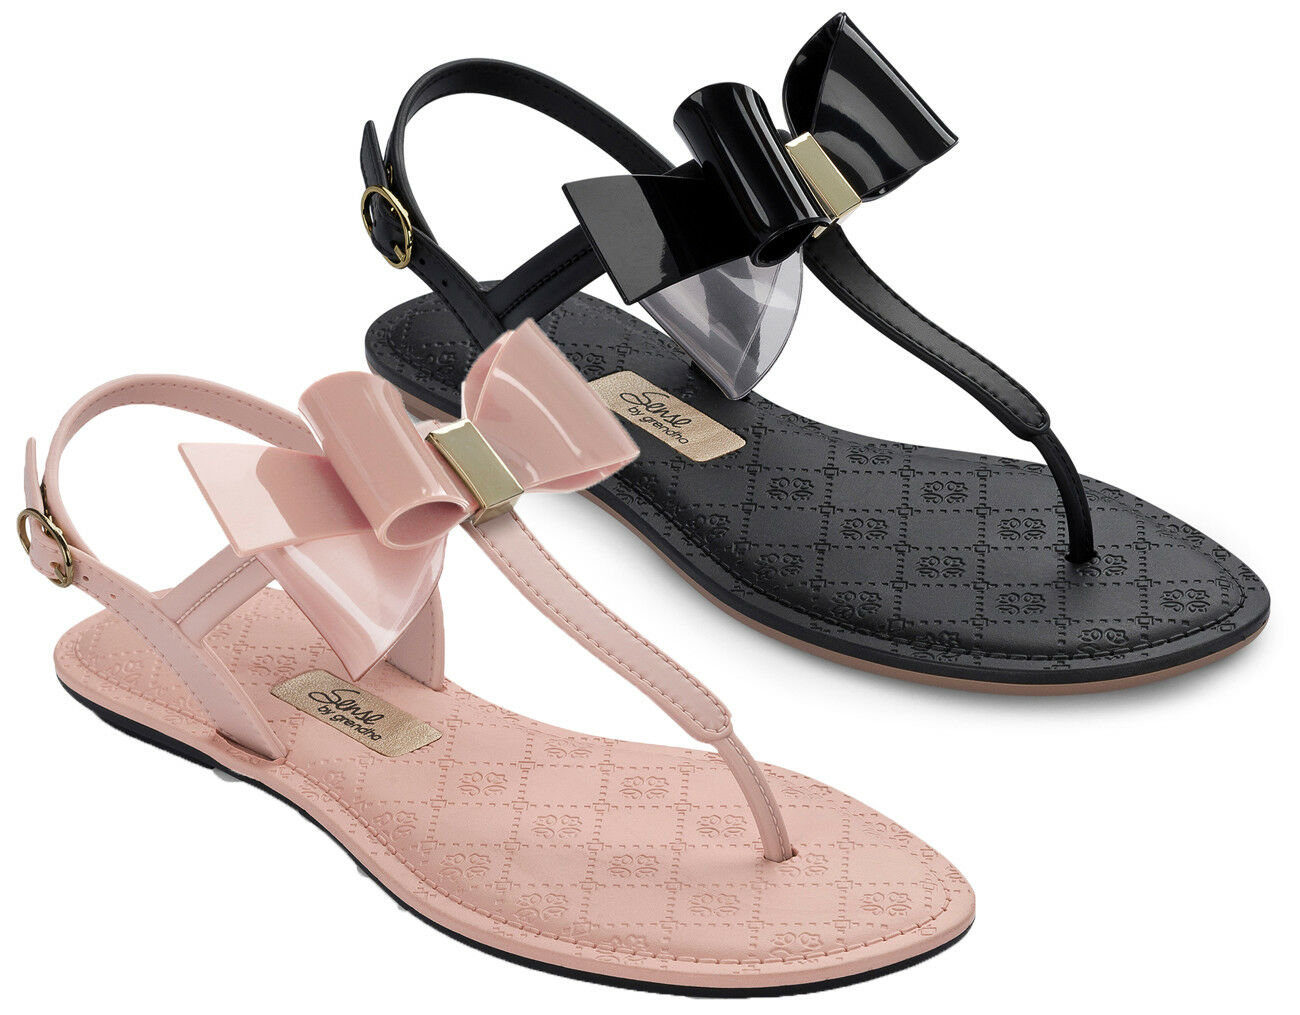 NEW Grendha Sense Bow Flip Flops Sandals T-Bar Strap Brazilian EU36-41 3-8